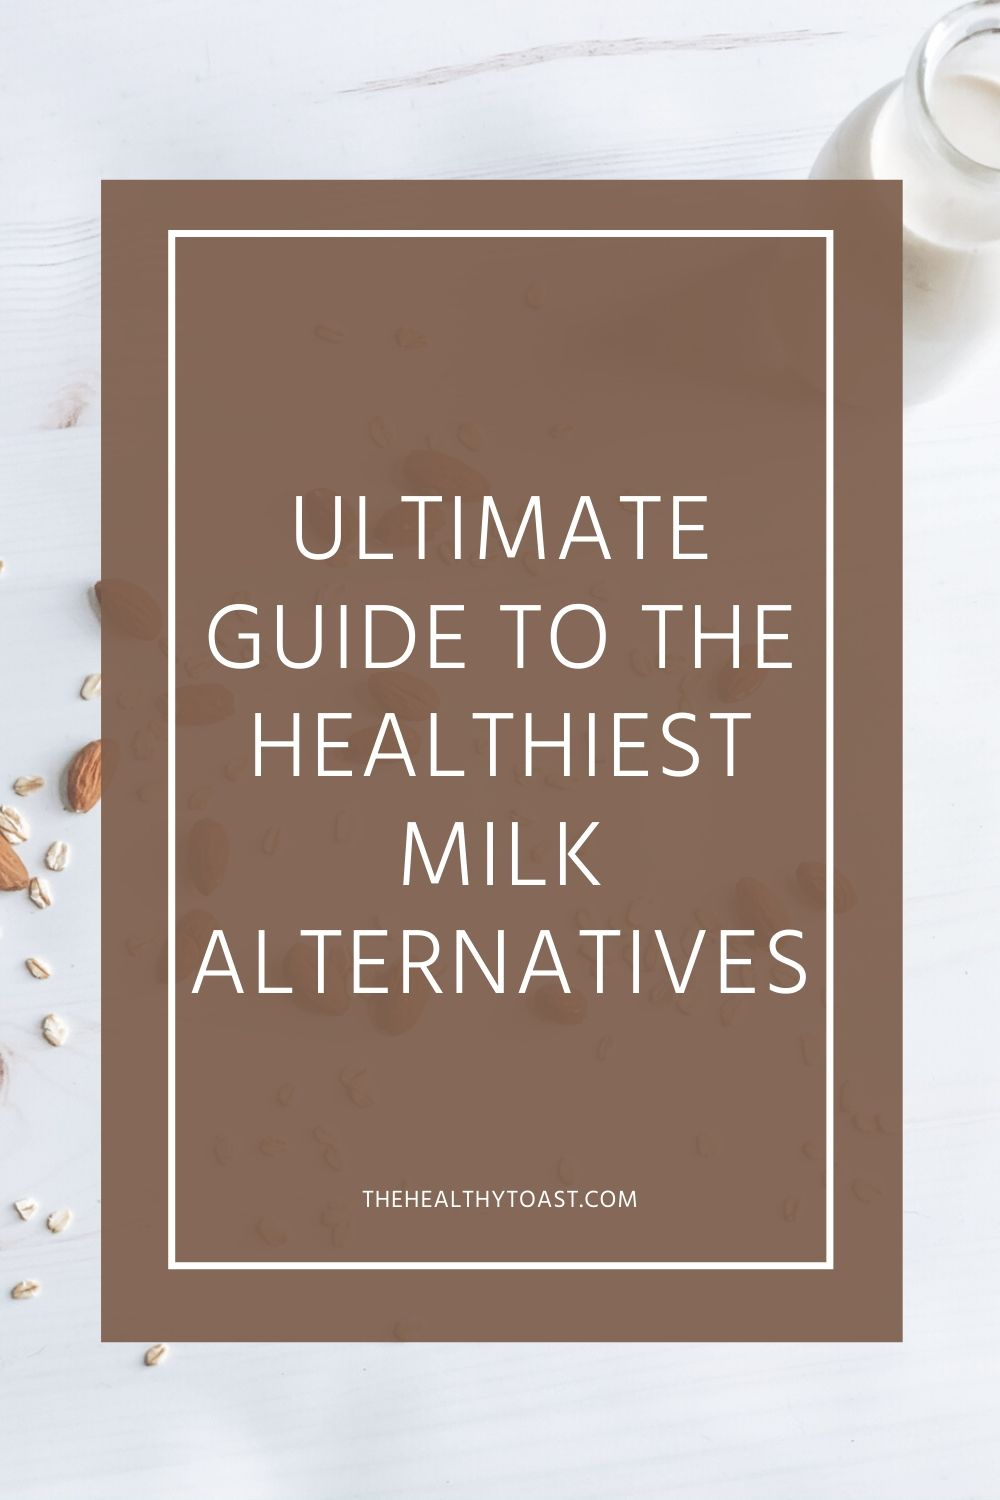 Ultimate Guide to the Healthiest Milk Alternatives